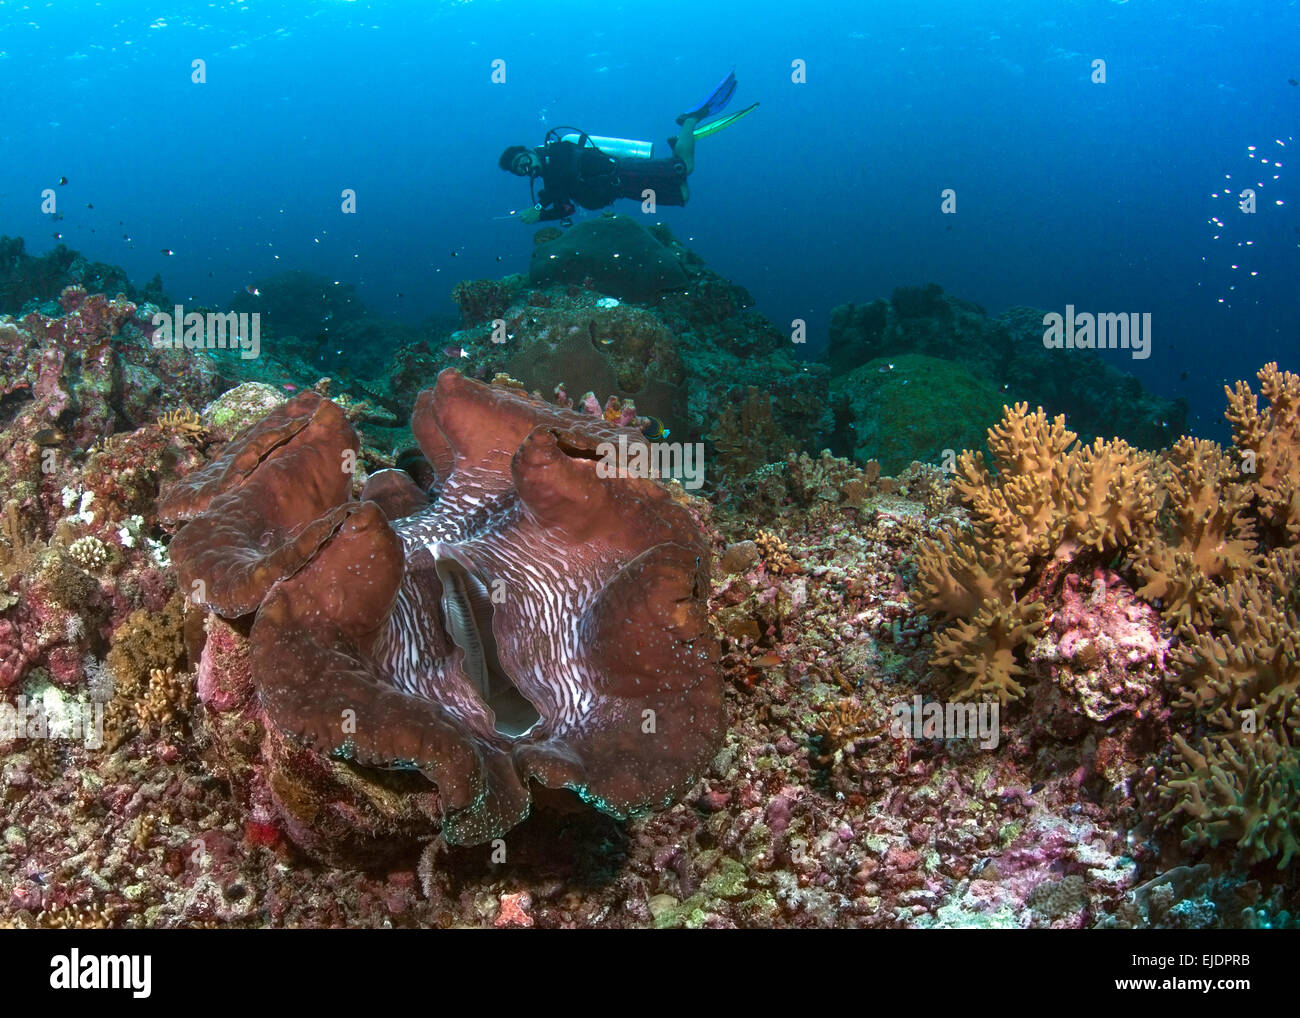 Scuba diver hovers over red giant clam. Spratly Islands, South China Sea. July, 2014. - Stock Image